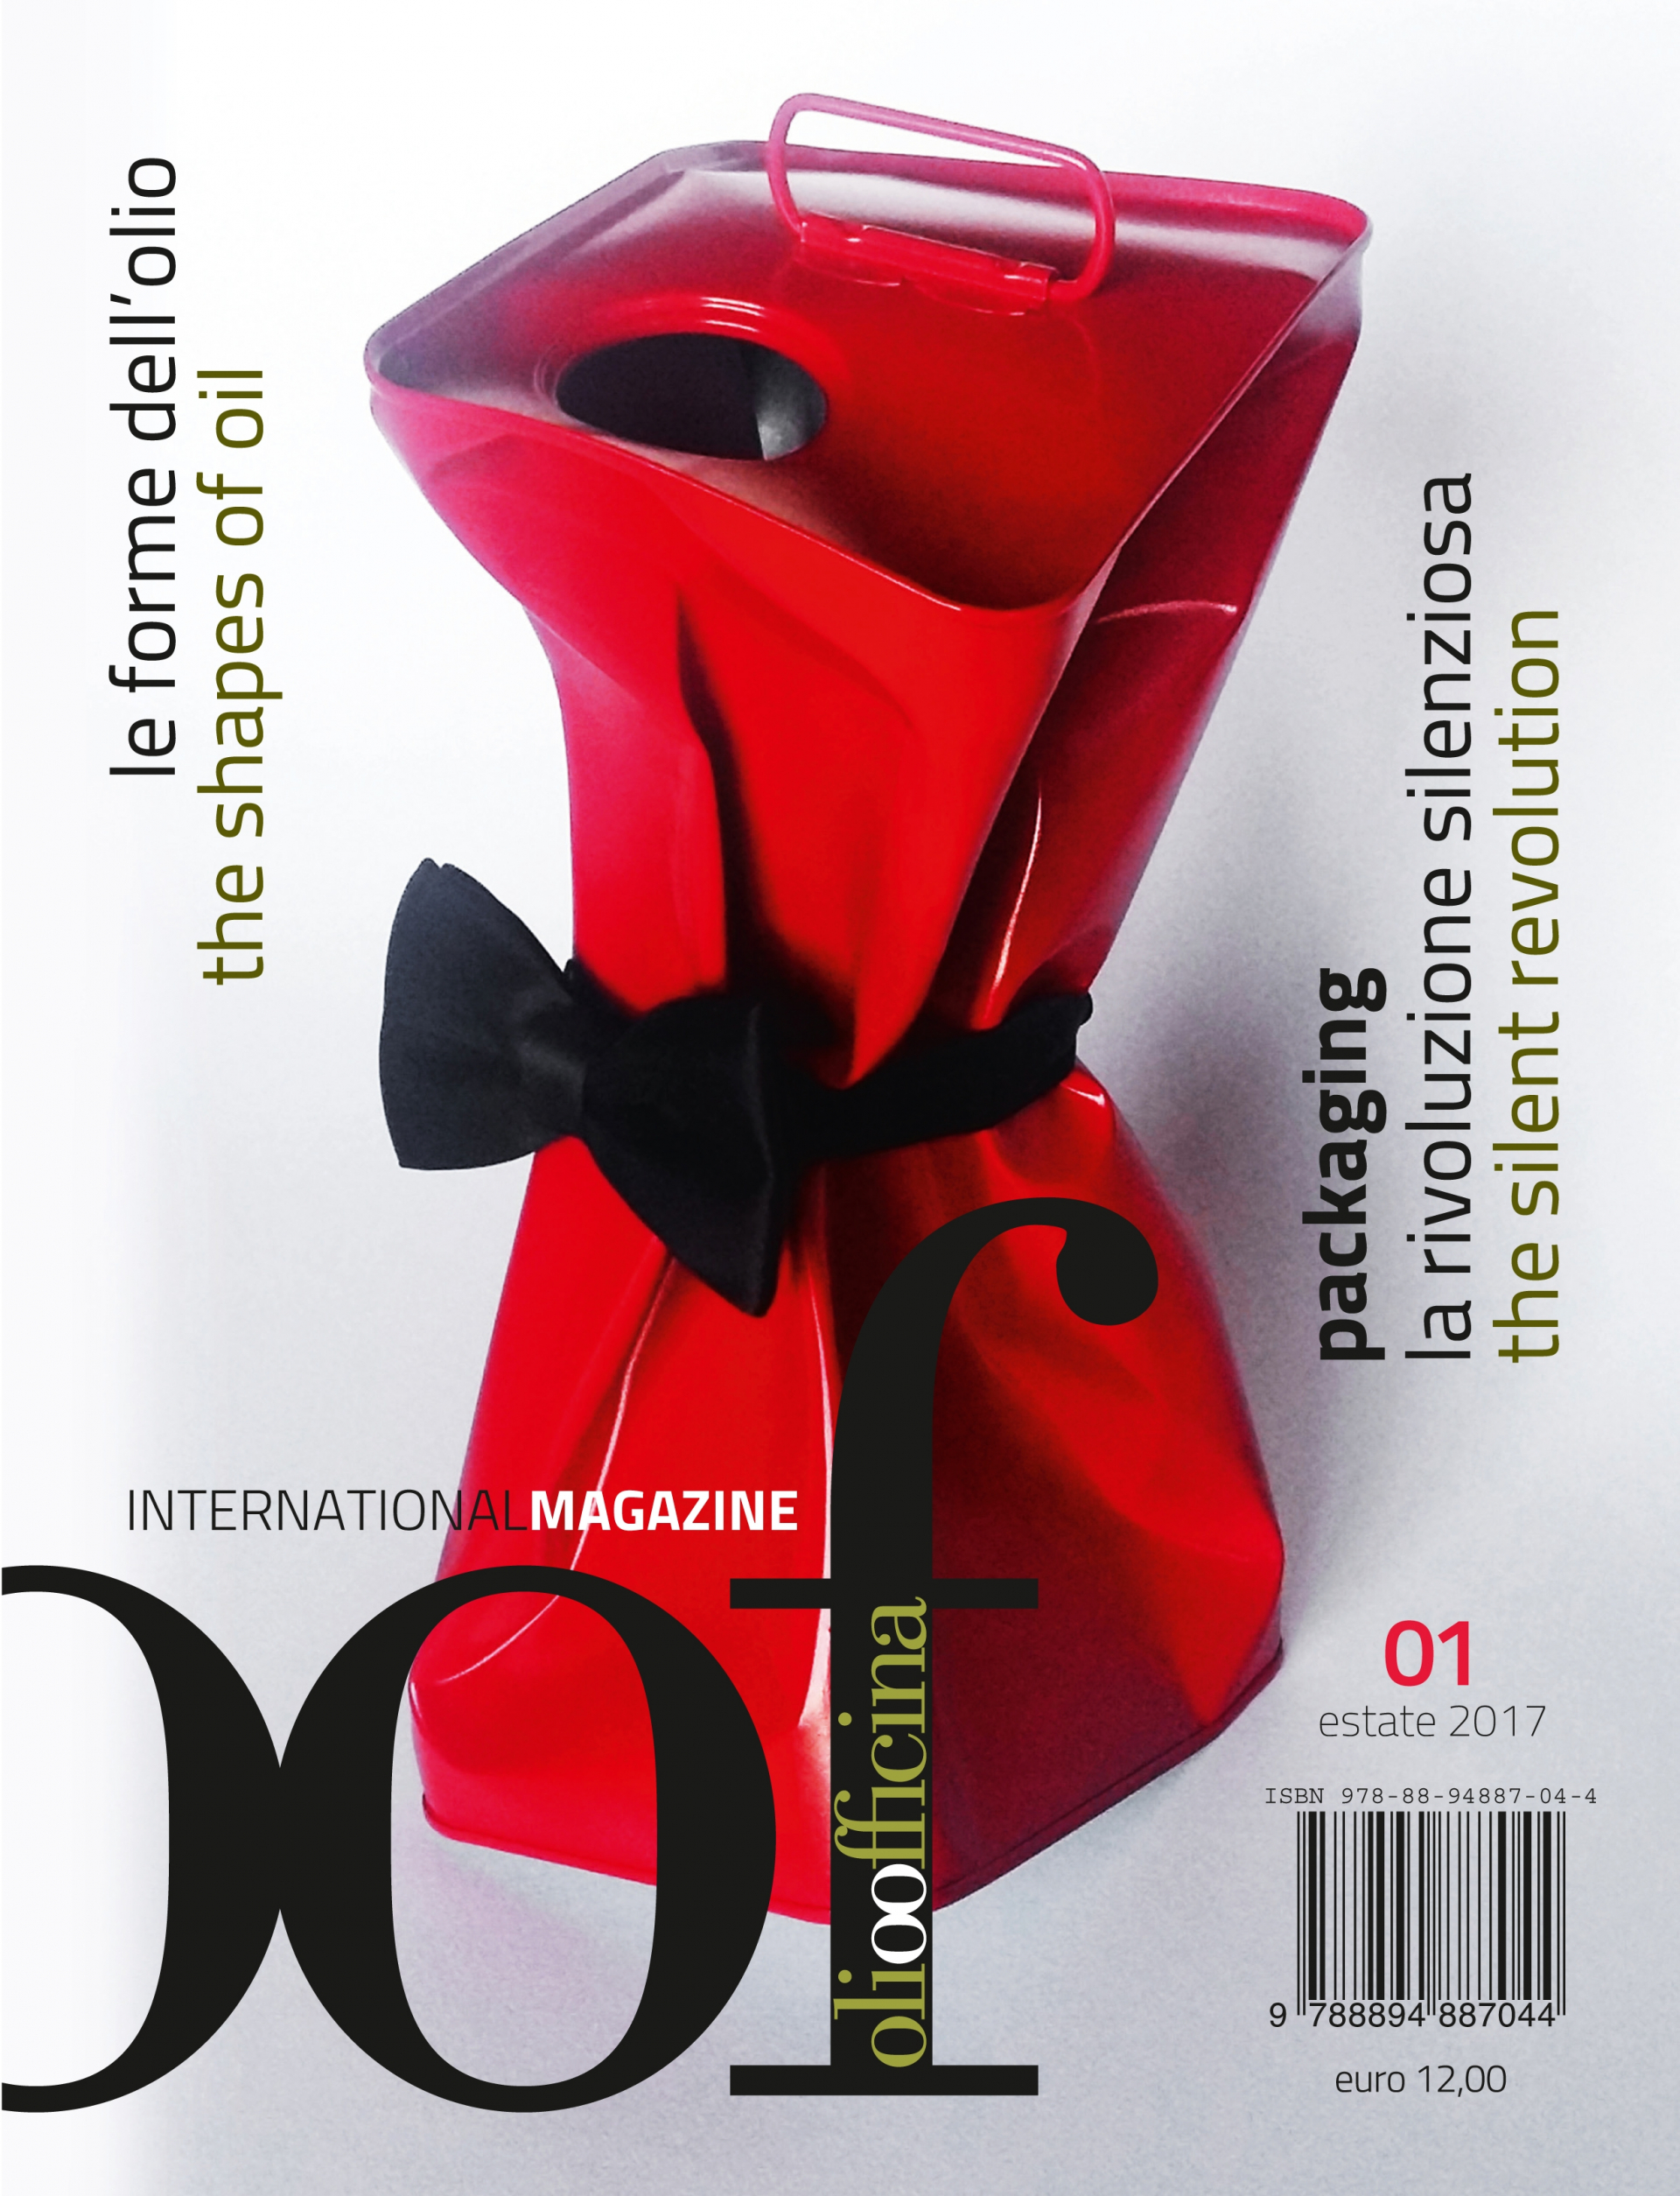 OOF International Magazine, in libreria e su abbonamento